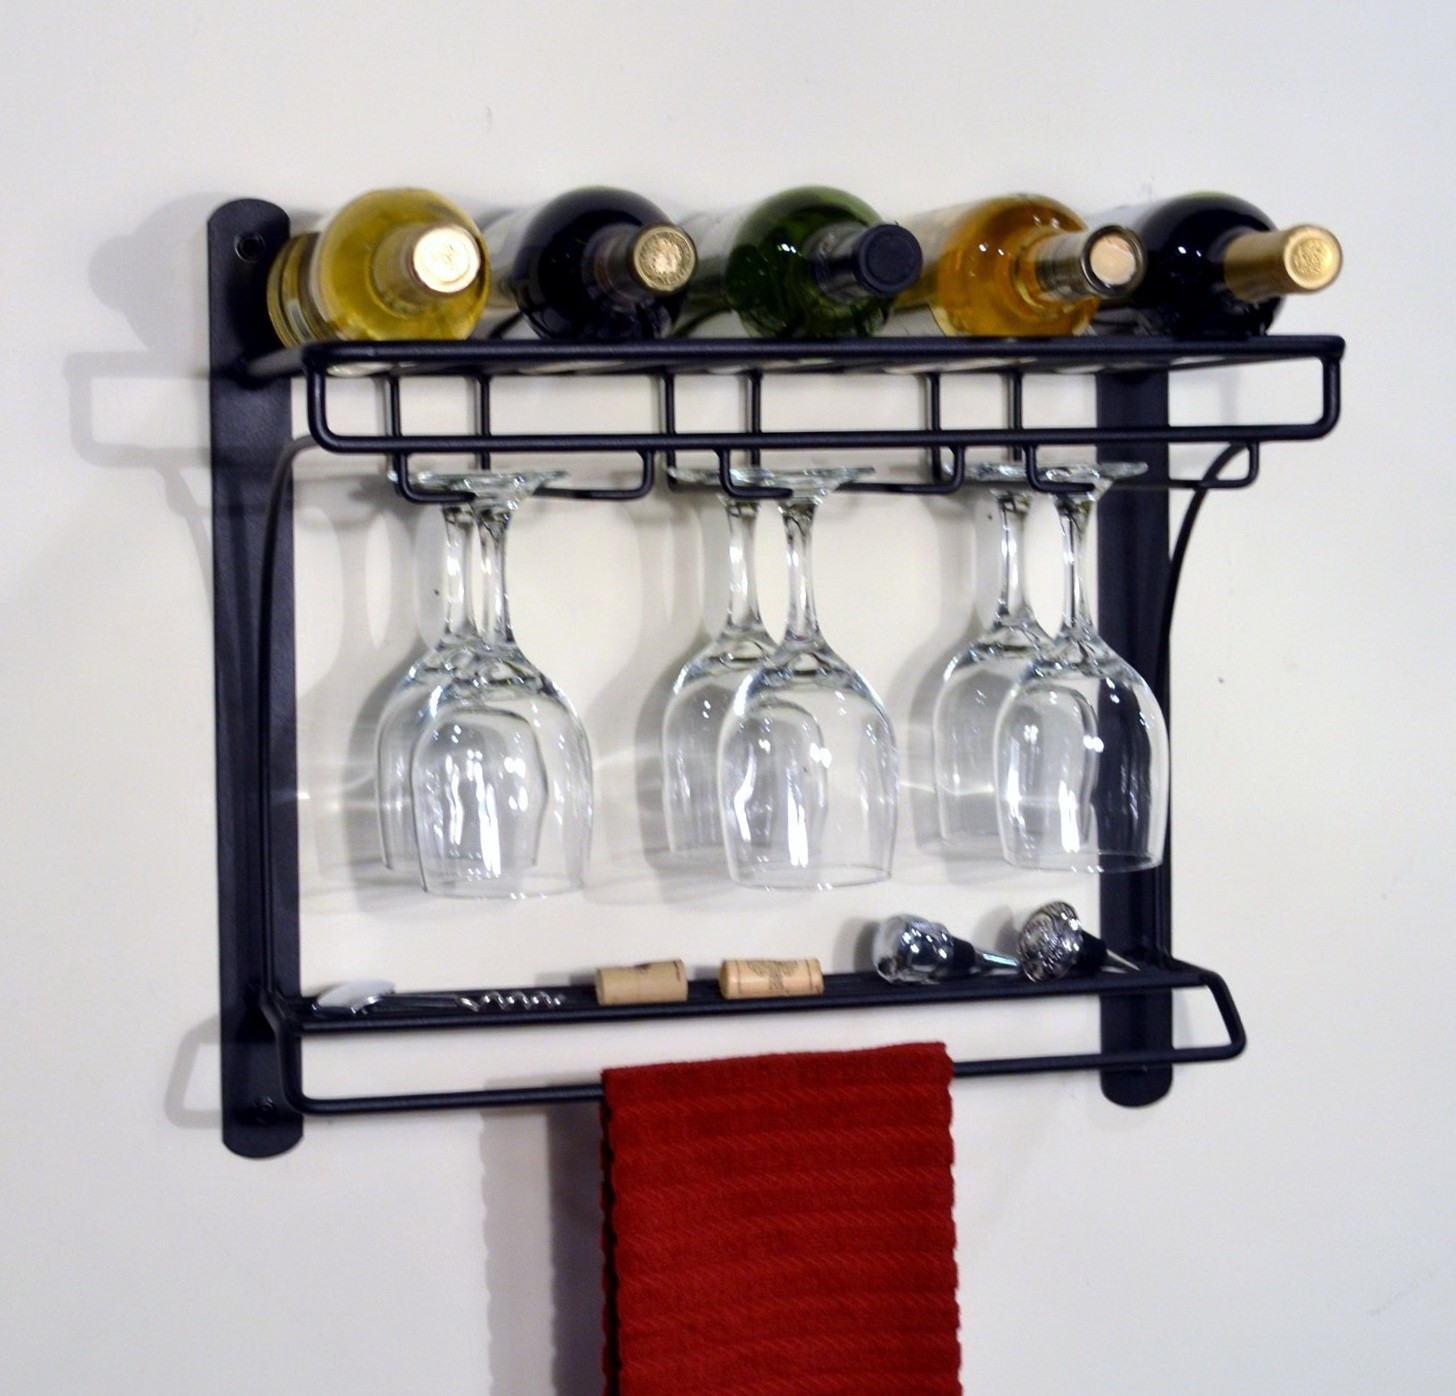 dining-room-interior-ideas-kitchen-ikea-wine-racks-and-simple-wall-mounted-black-polished-with-glass-hanger-also-vintage-view-wine-racks-big-ideas-for-small-wine-racks